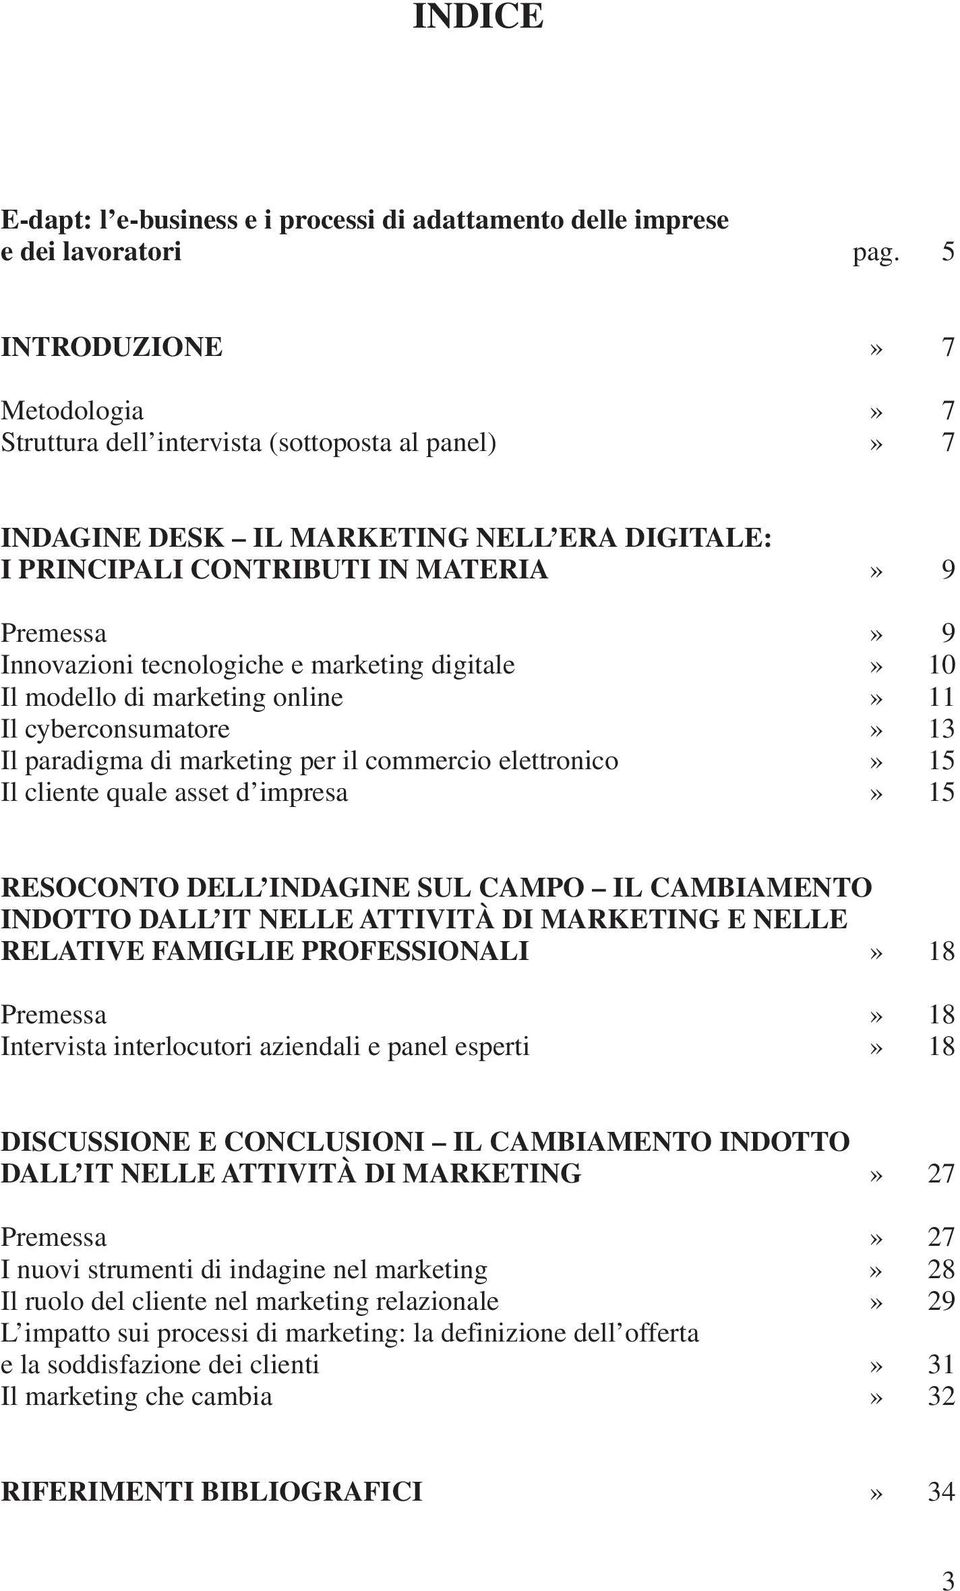 tecnologiche e marketing digitale» 10 Il modello di marketing online» 11 Il cyberconsumatore» 13 Il paradigma di marketing per il commercio elettronico» 15 Il cliente quale asset d impresa» 15